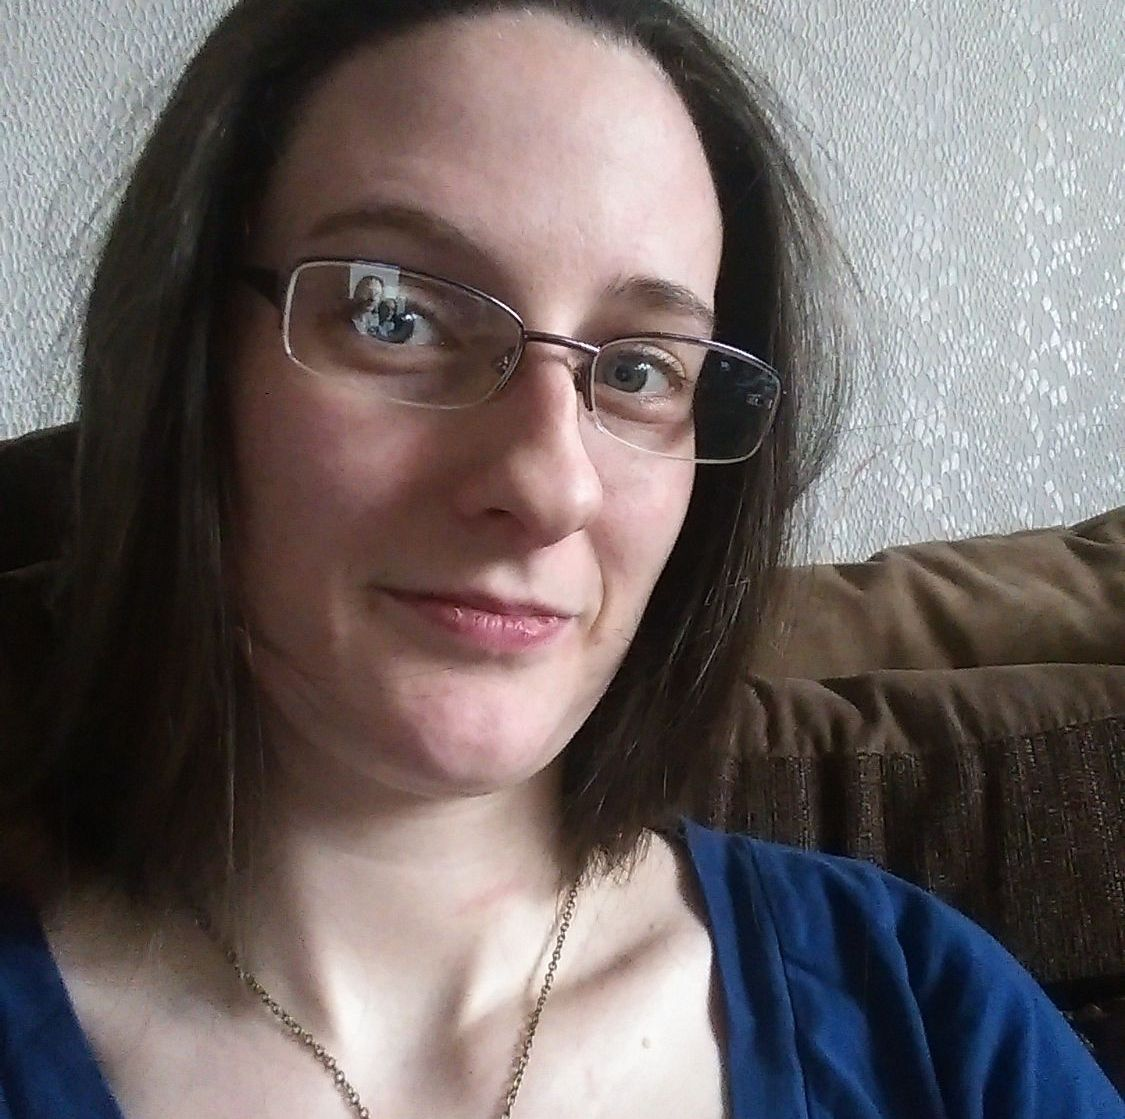 A headshot of Caz. Her hair is loose and dark brown. She wears glasses and a medium blue top.